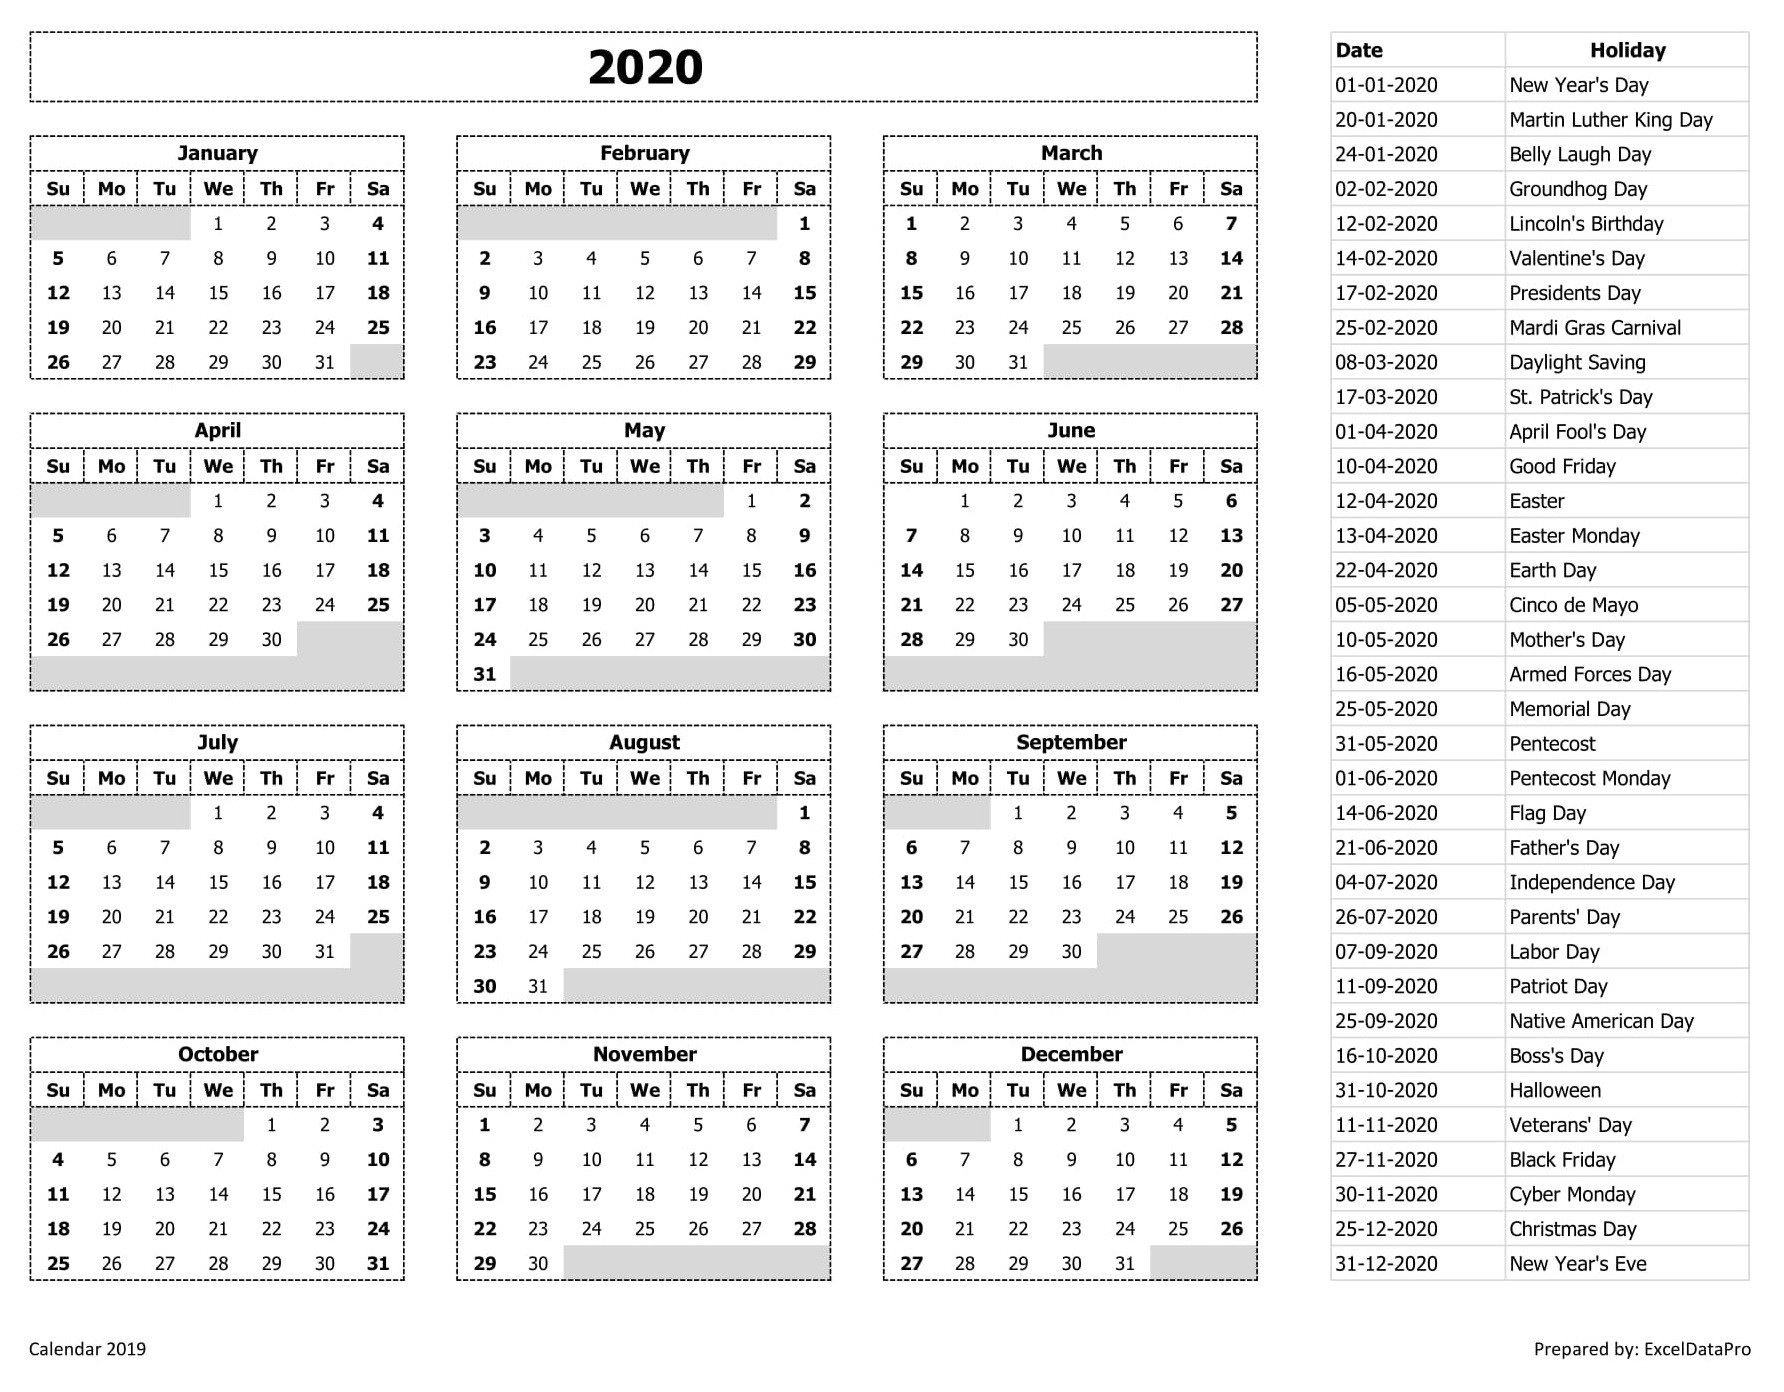 2020 Calendar Excel Templates, Printable Pdfs & Images-List Of Holidays By Month 2020